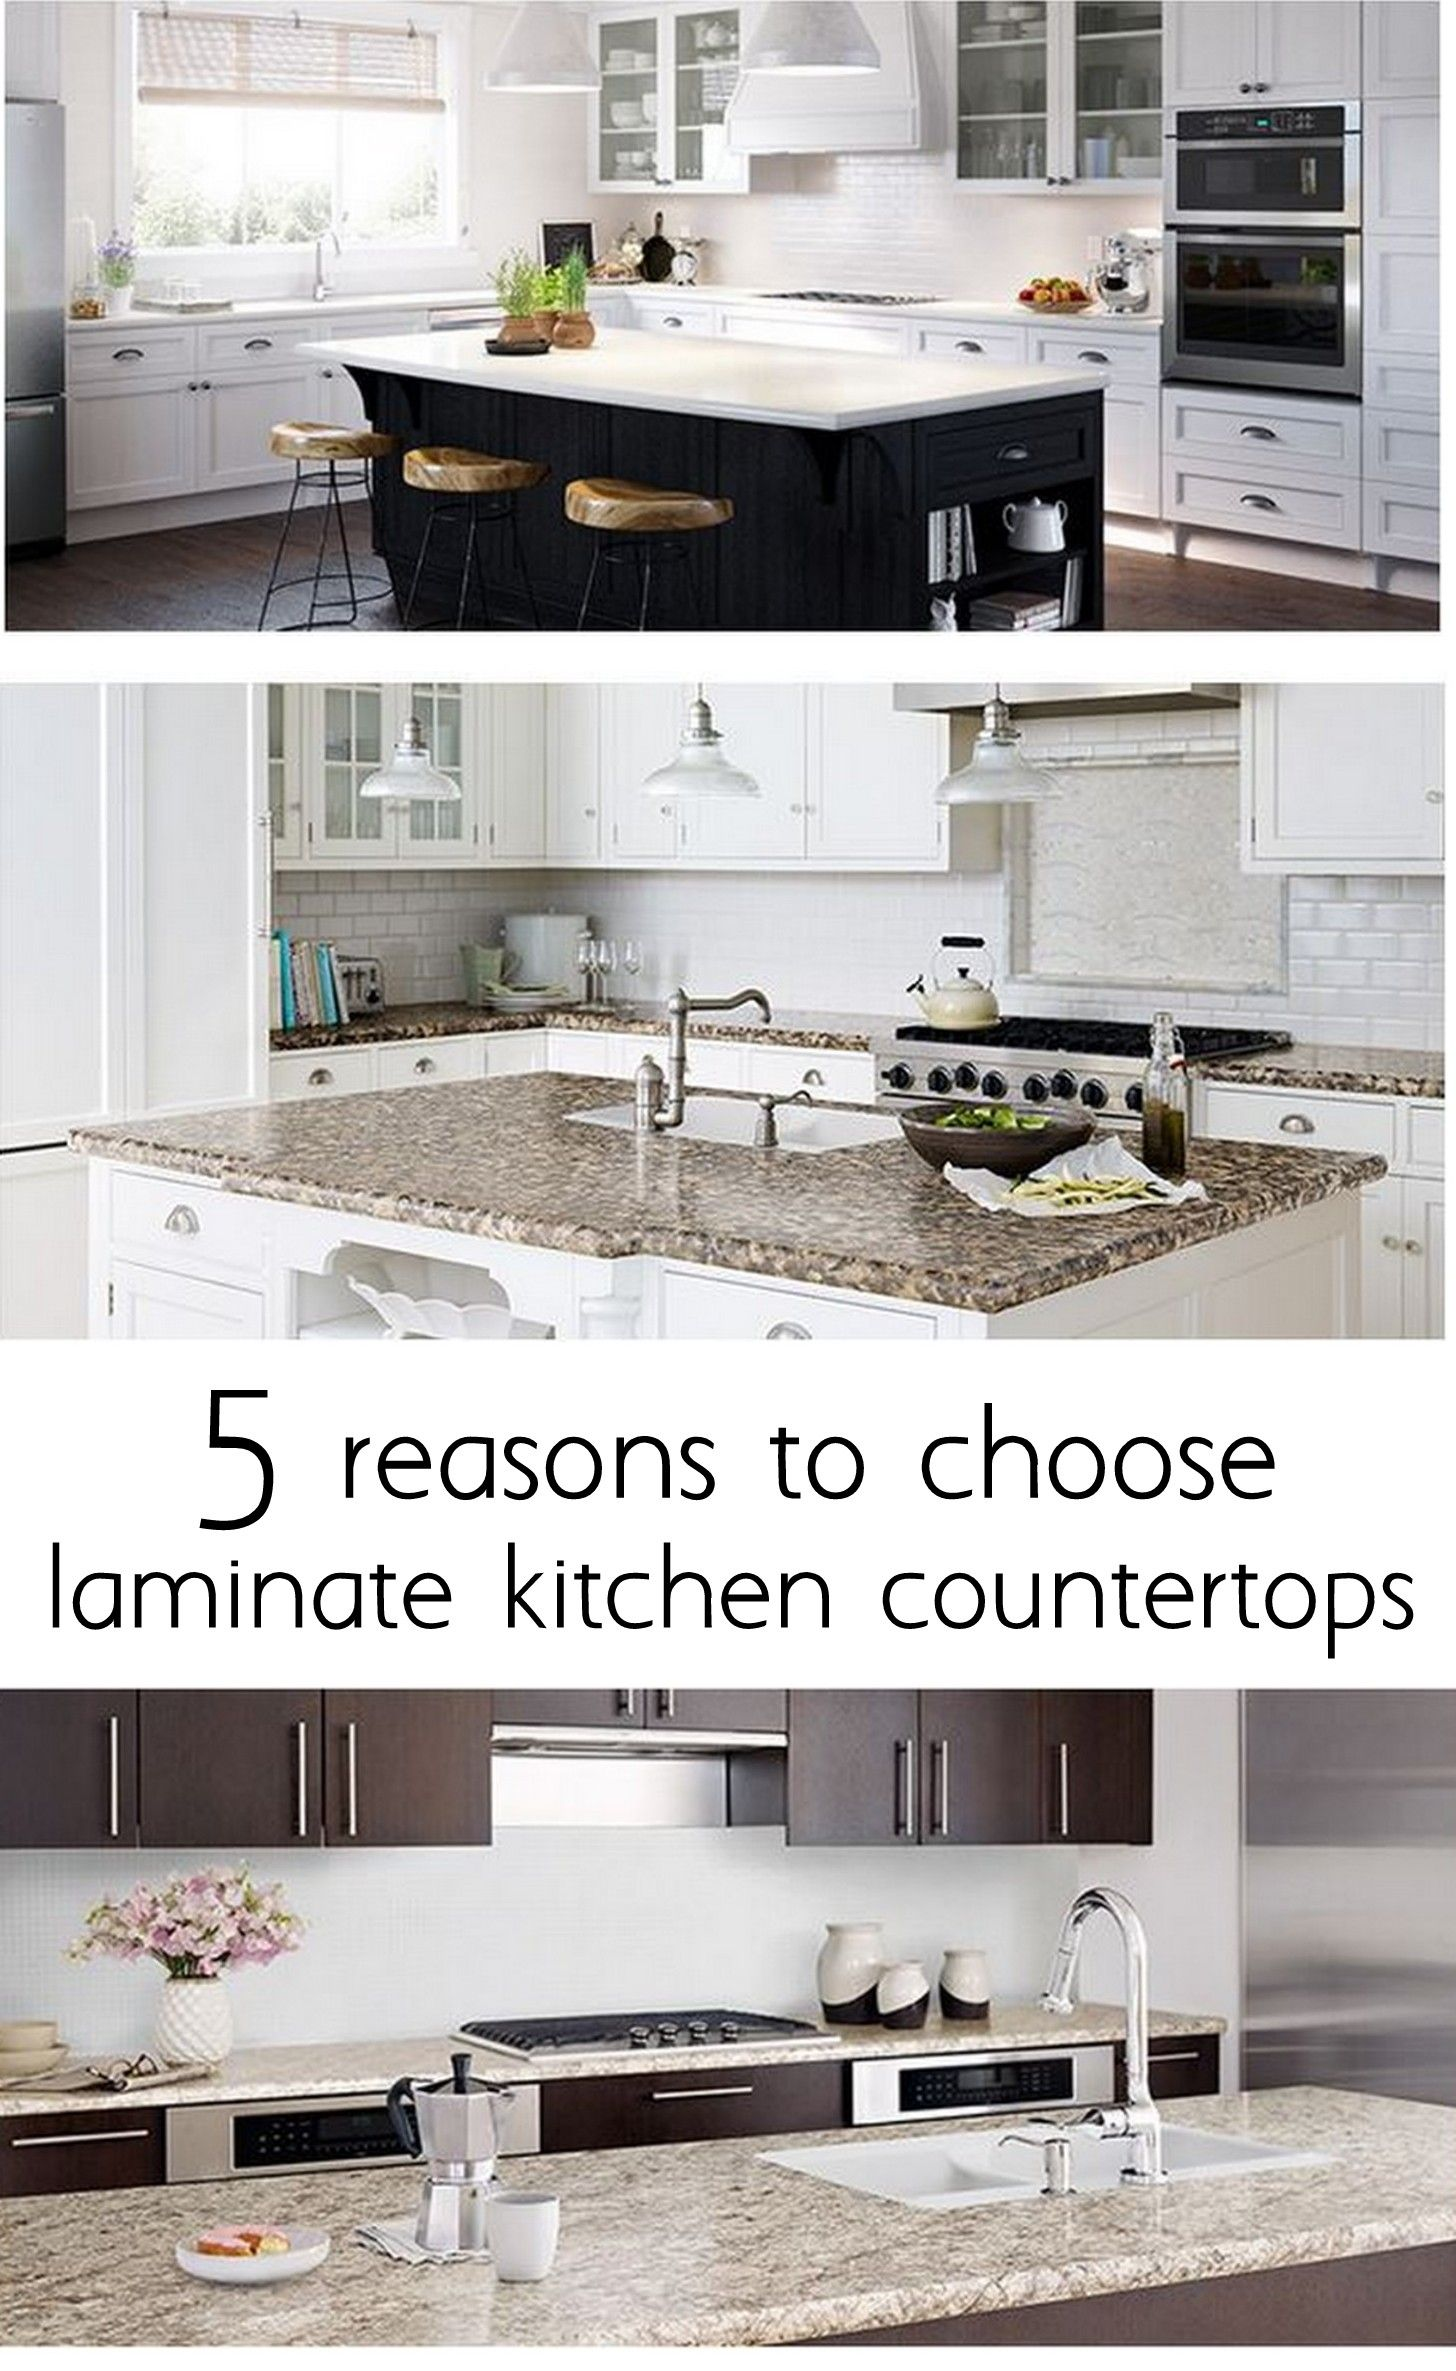 reasons to choose laminate kitchen countertops i like the rounded edges and tile backsplash. Black Bedroom Furniture Sets. Home Design Ideas